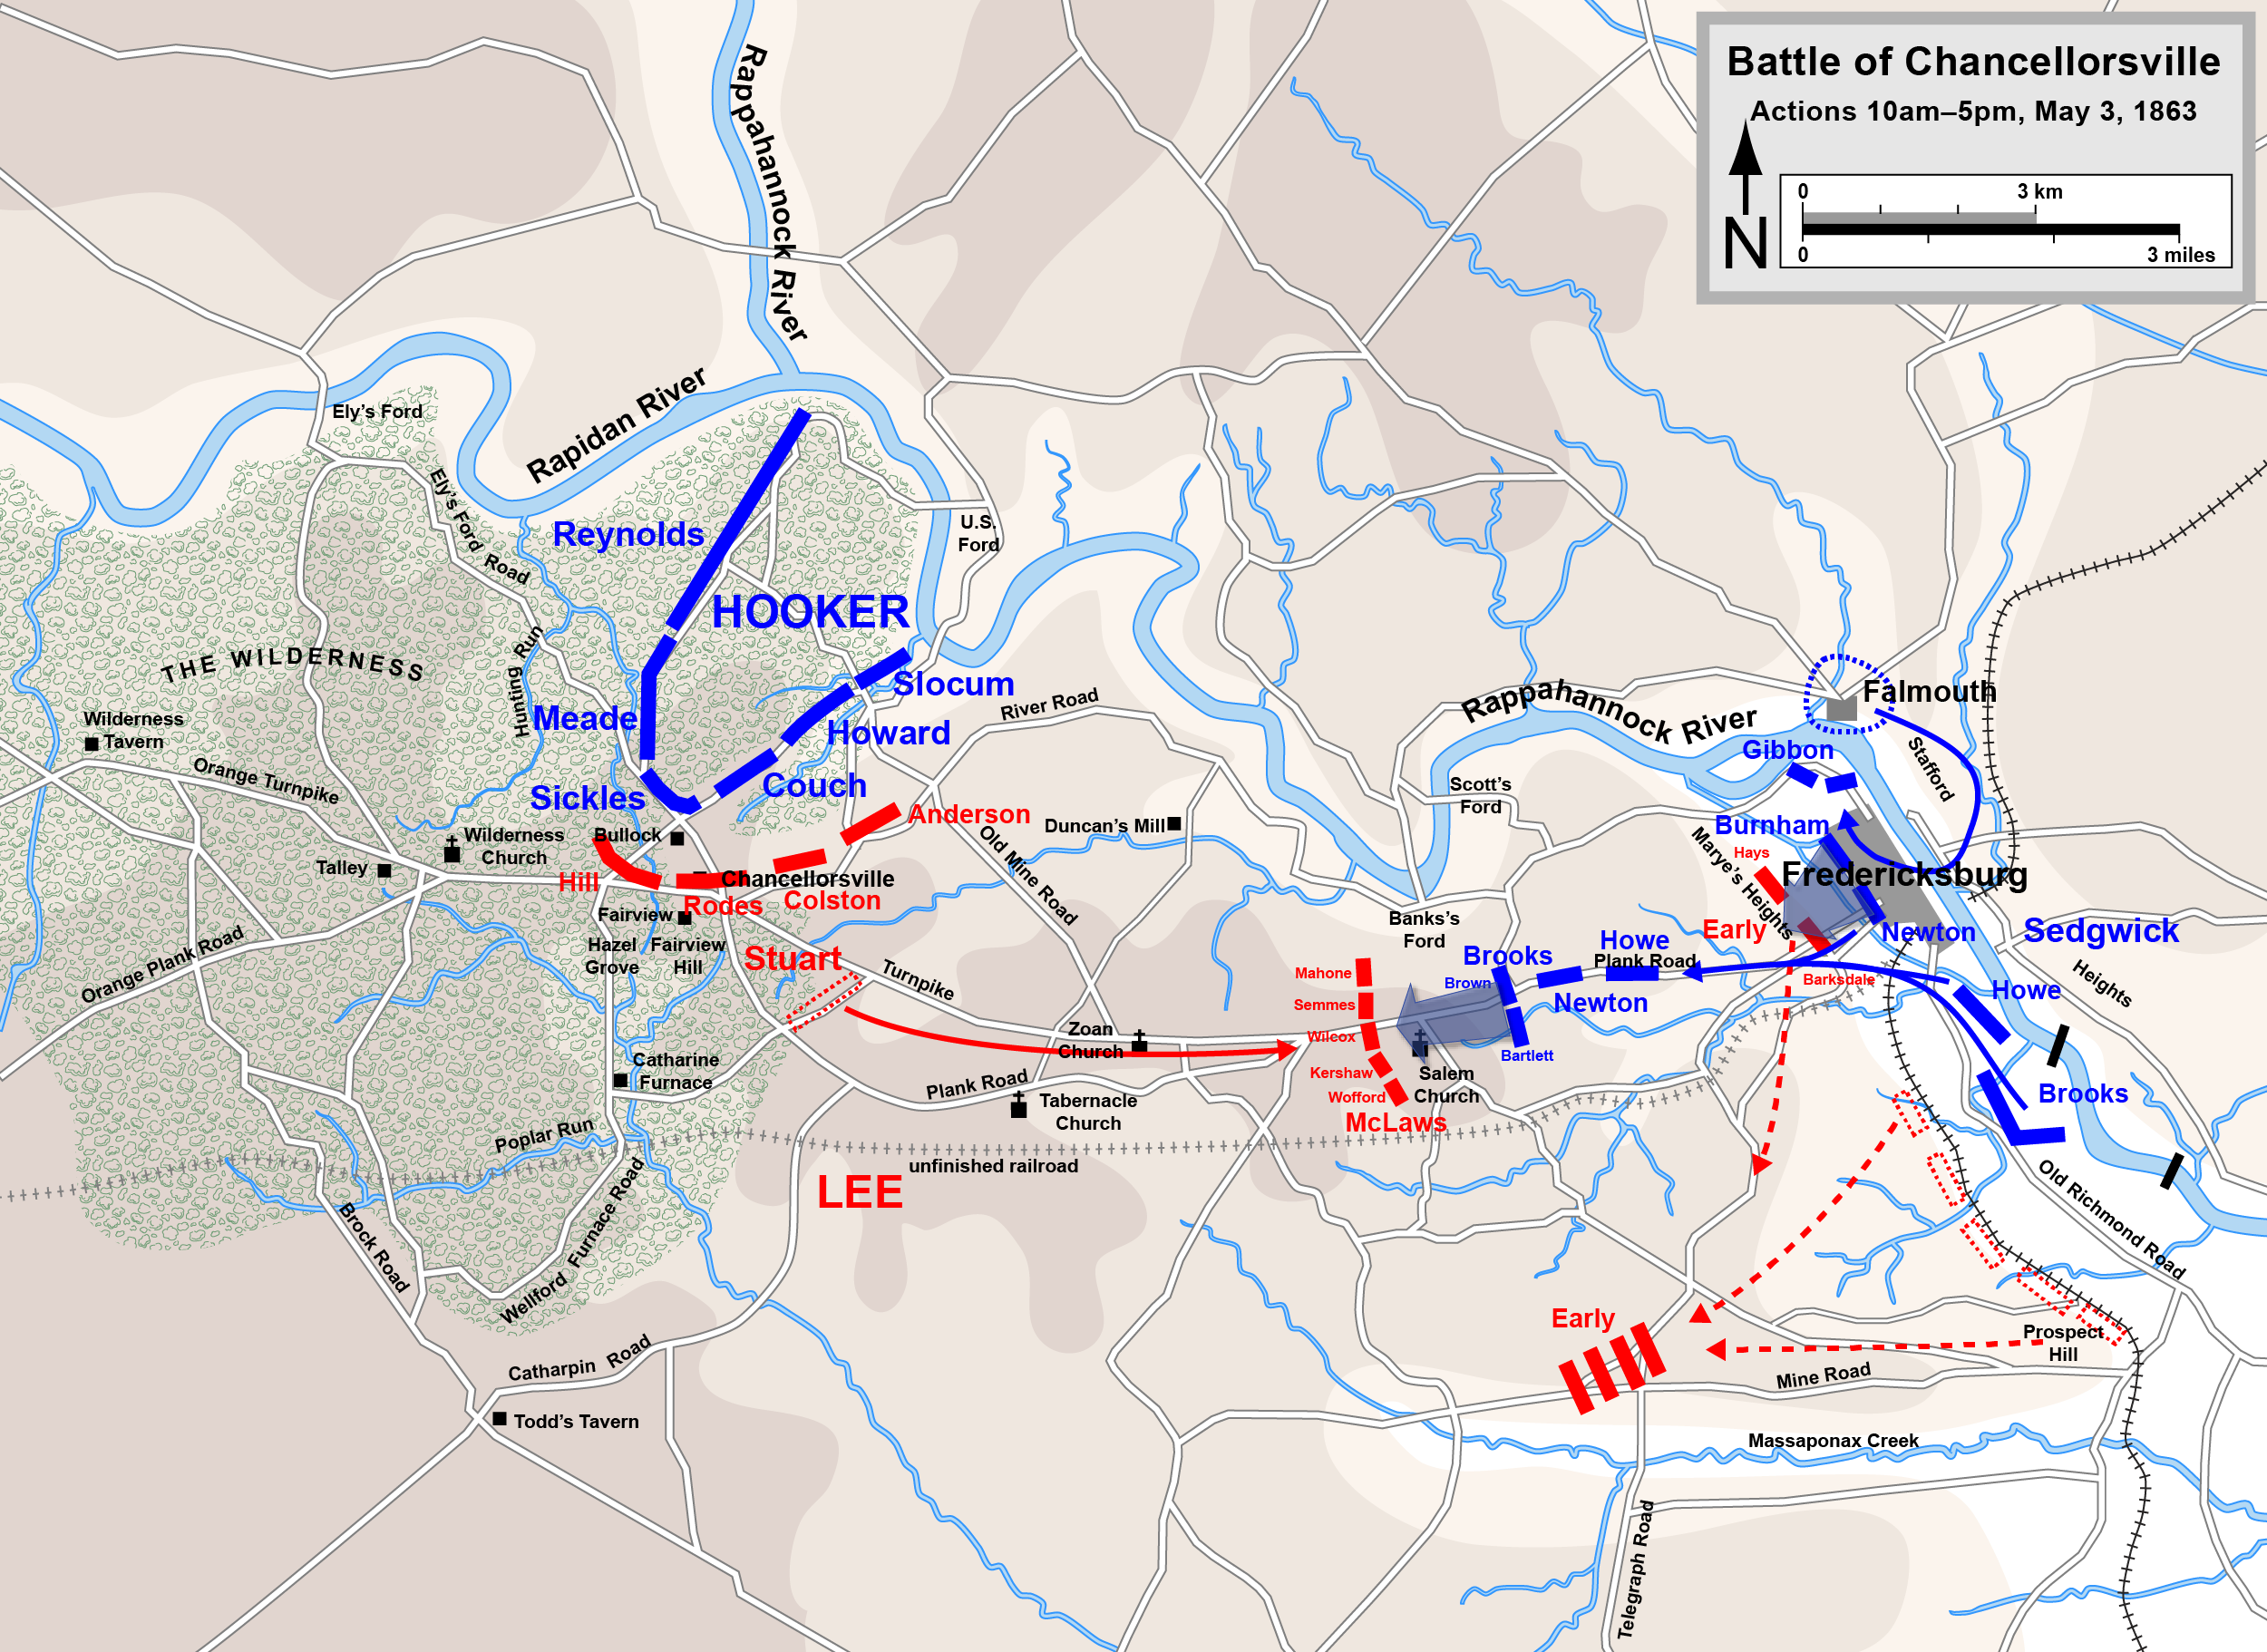 Файл:Chancellorsville May3b.png